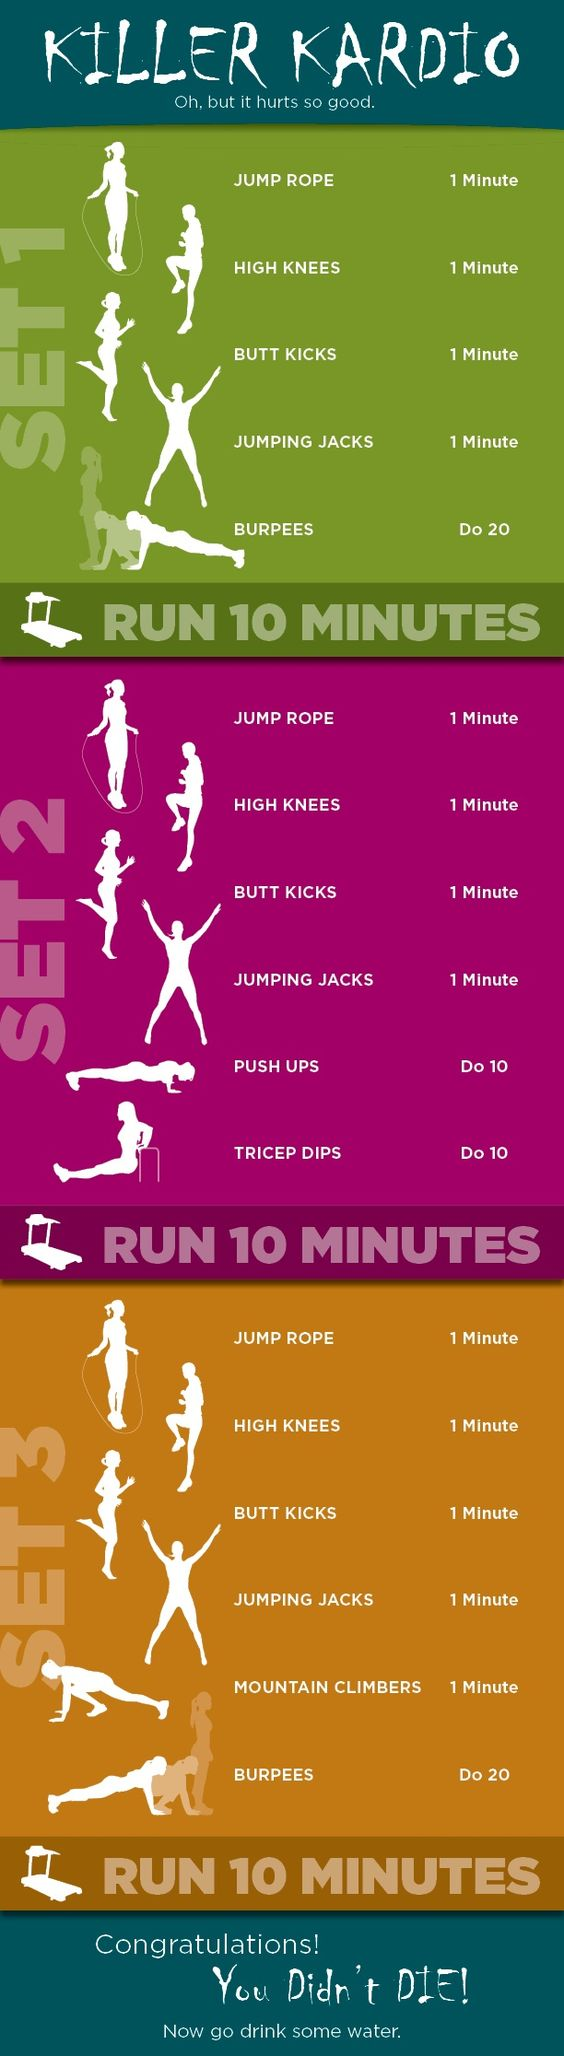 Killer-Kardio I like this one shows you exactly what each exercise is